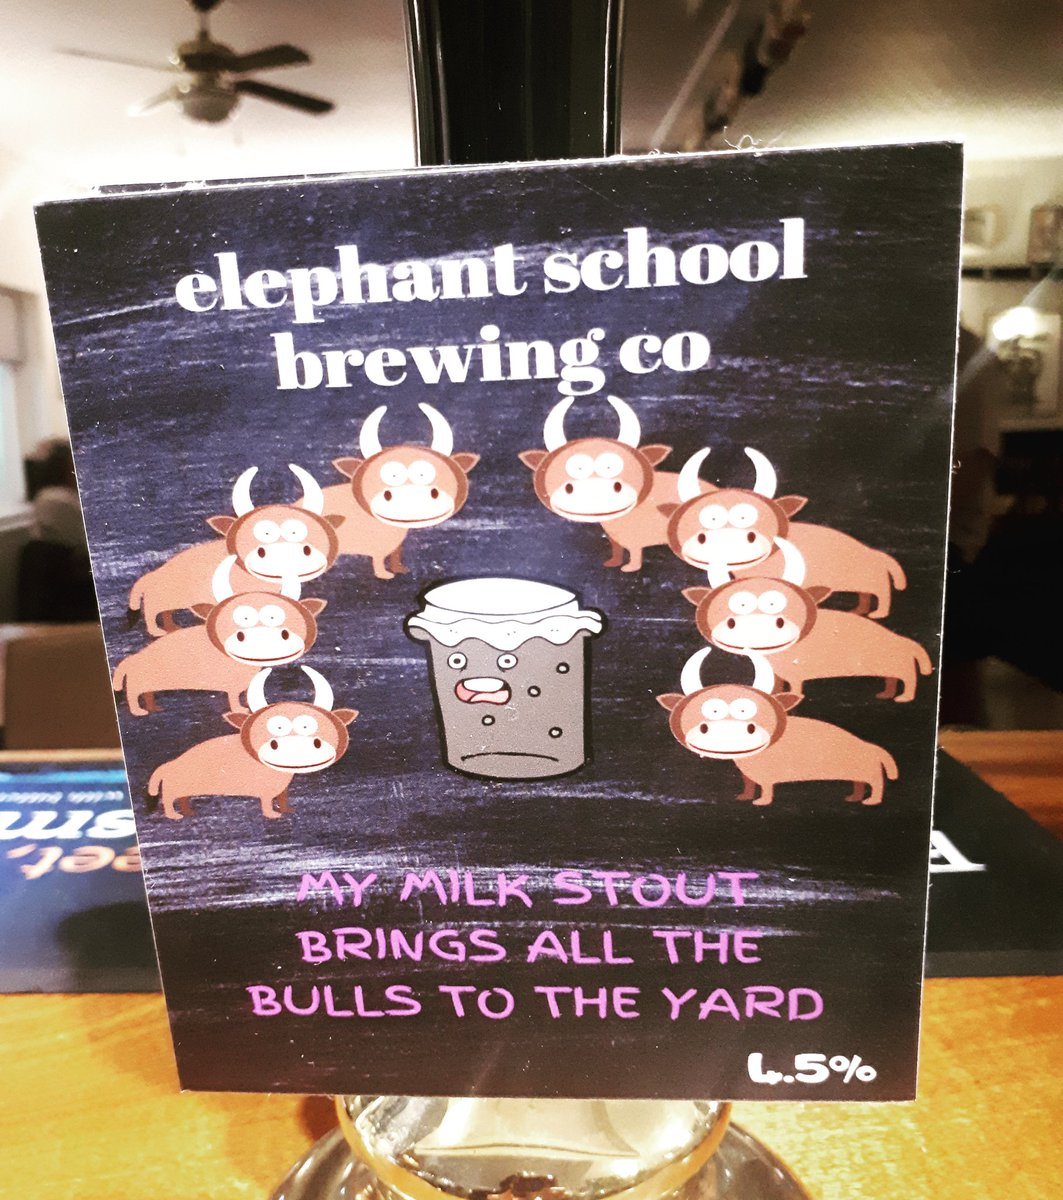 Now serving this cheeky brew... 🍻@ElephantSchoolB @BrentwoodBrewCo #everydayisabeerfestival #beer #nowserving #onthebar #local #localale #localbrew